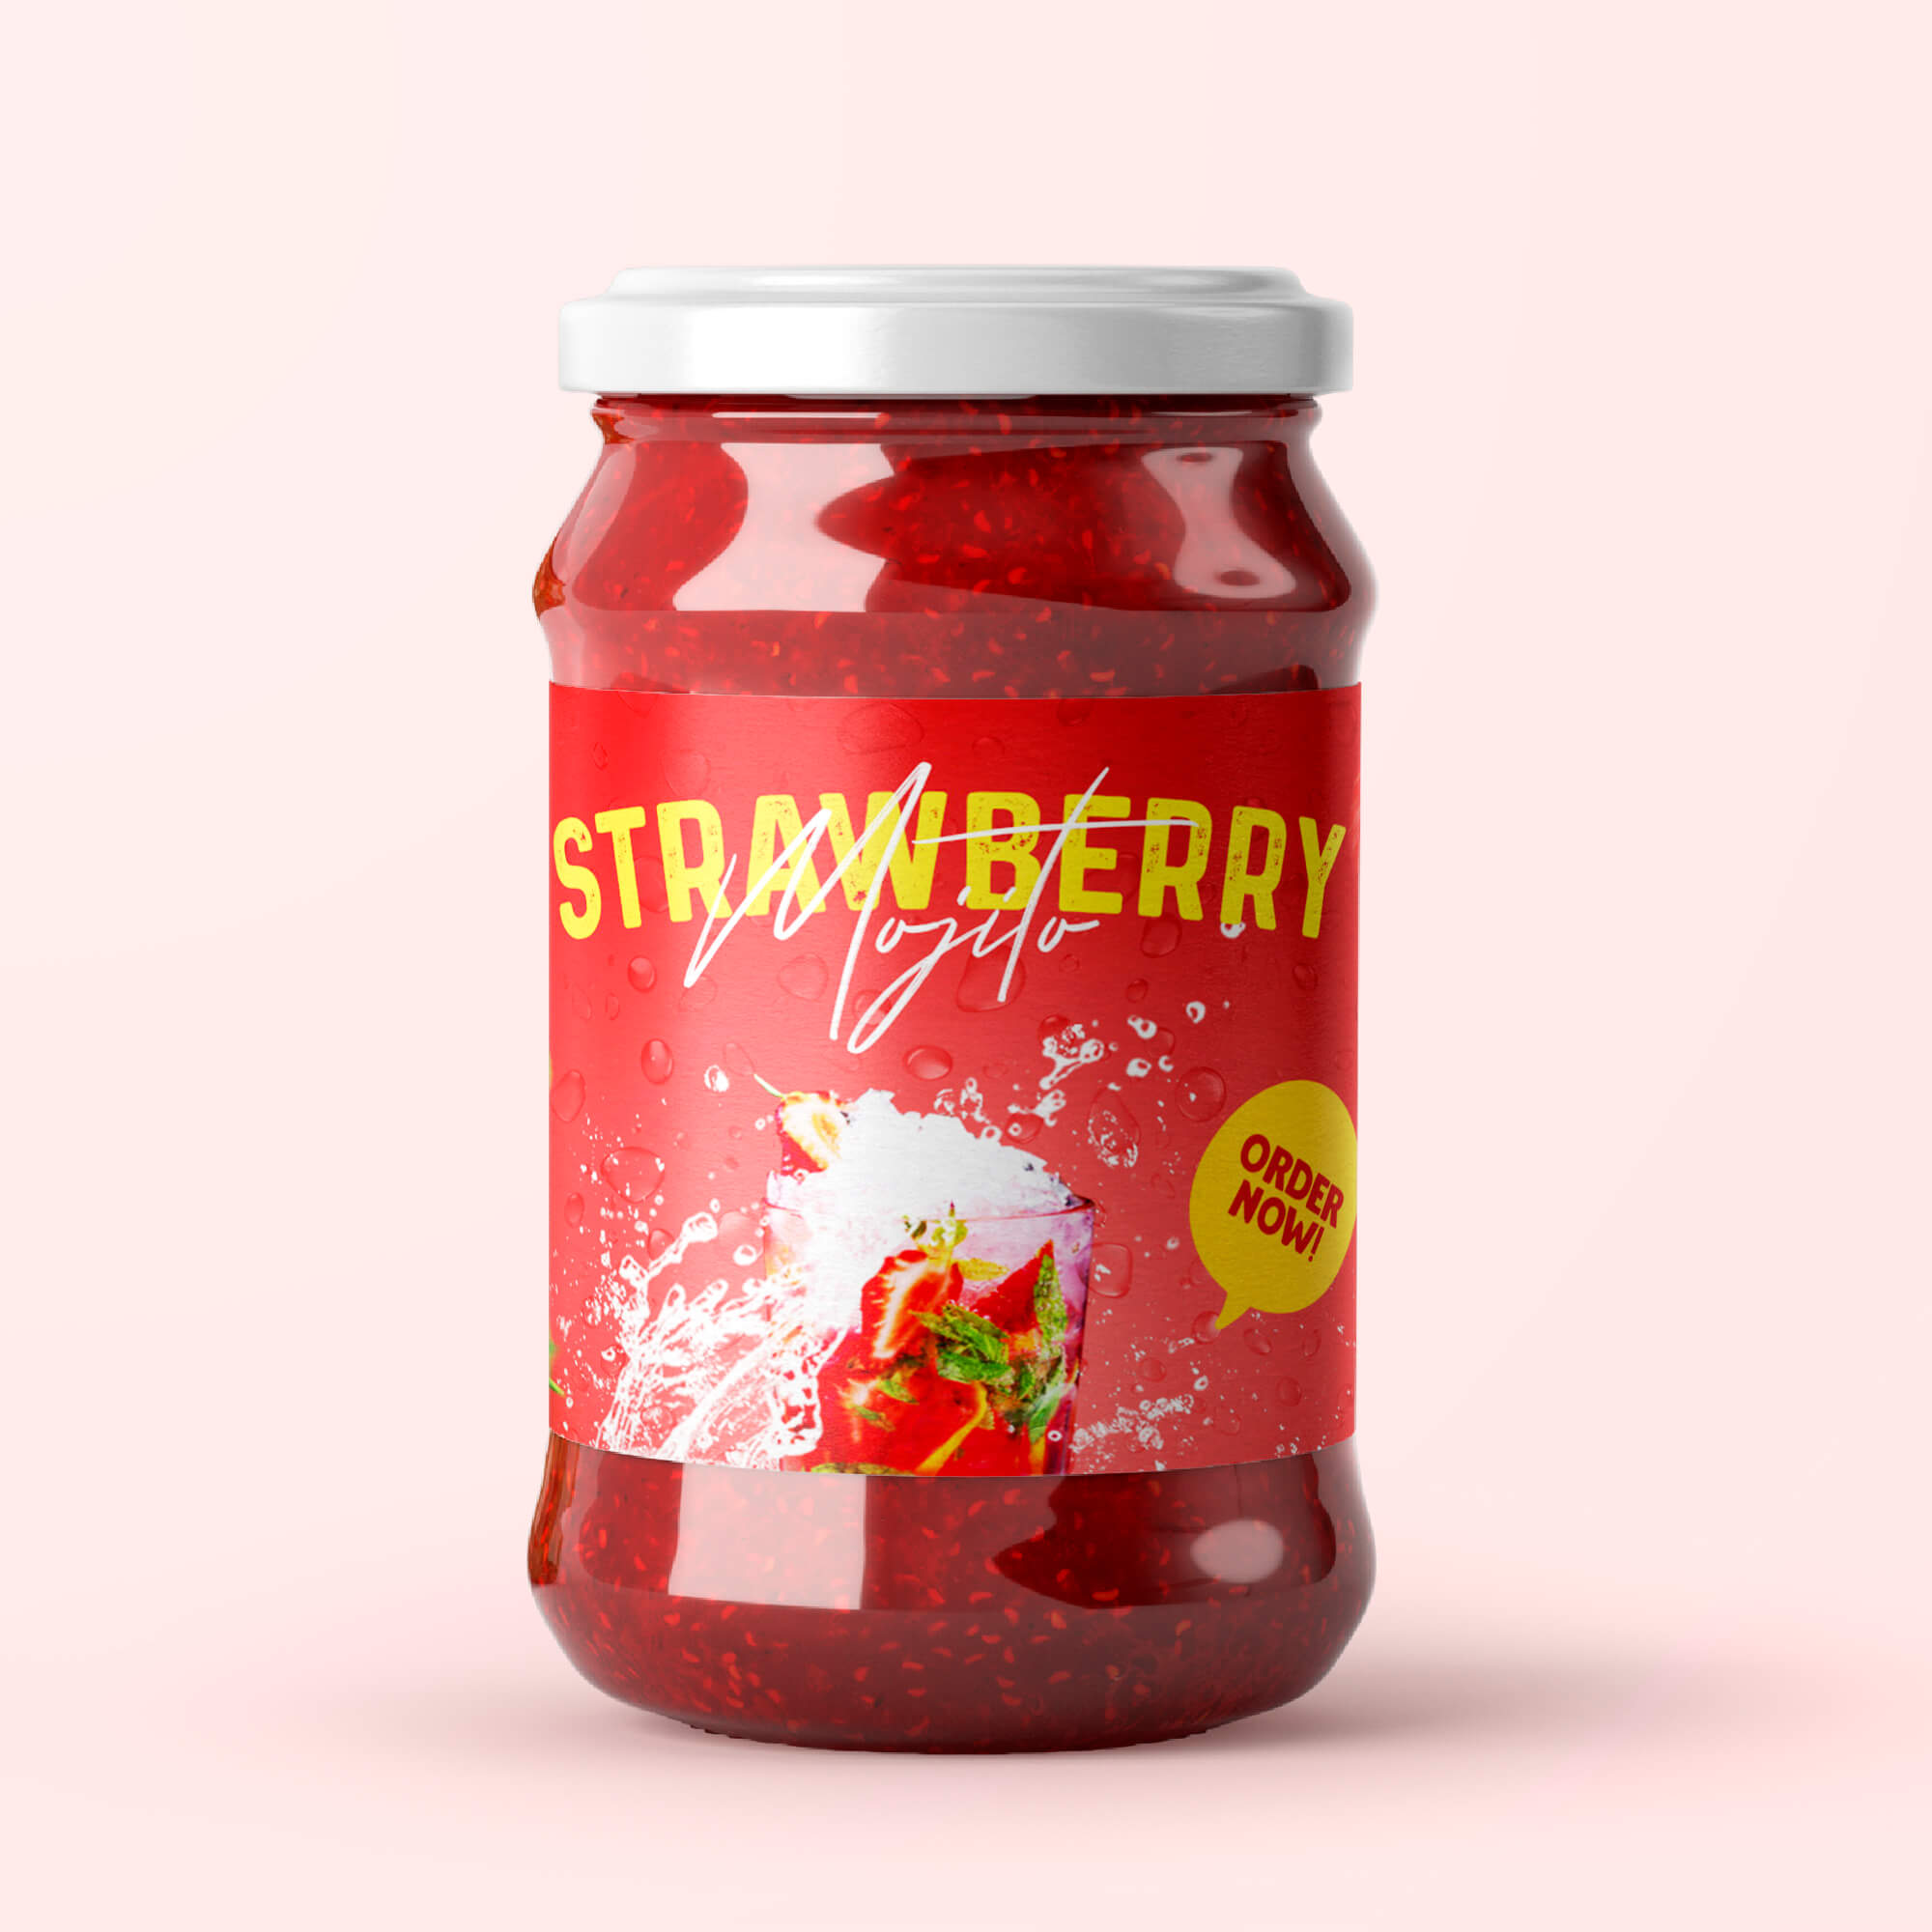 Design Free Jam Bottle Mockup PSD Template